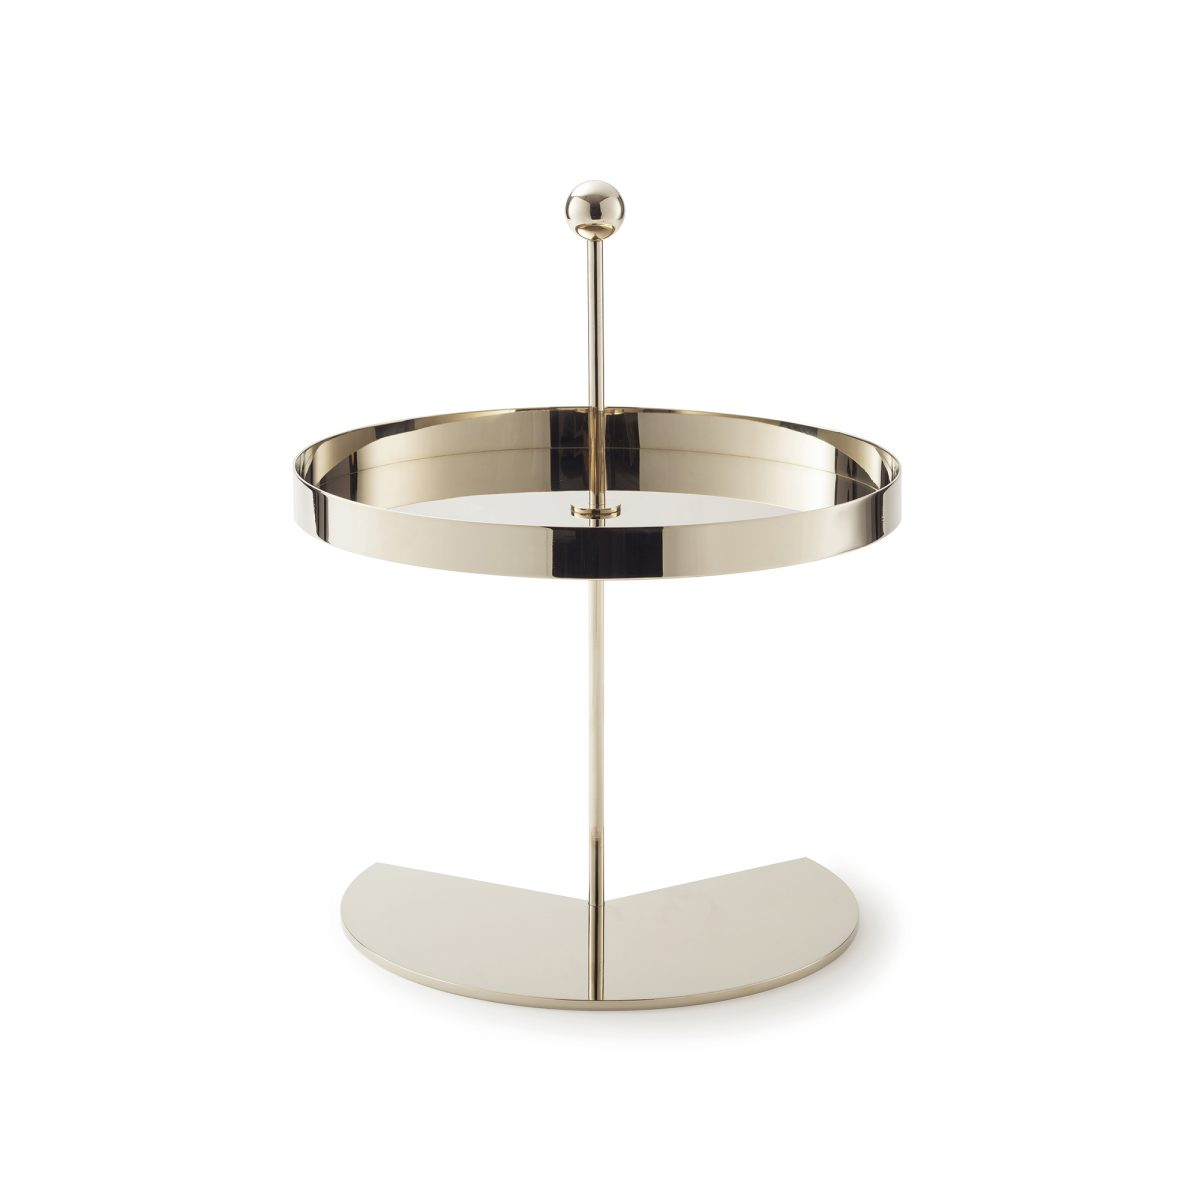 1-off_the_moon_cake_stand_01_accessories_trays&tableware